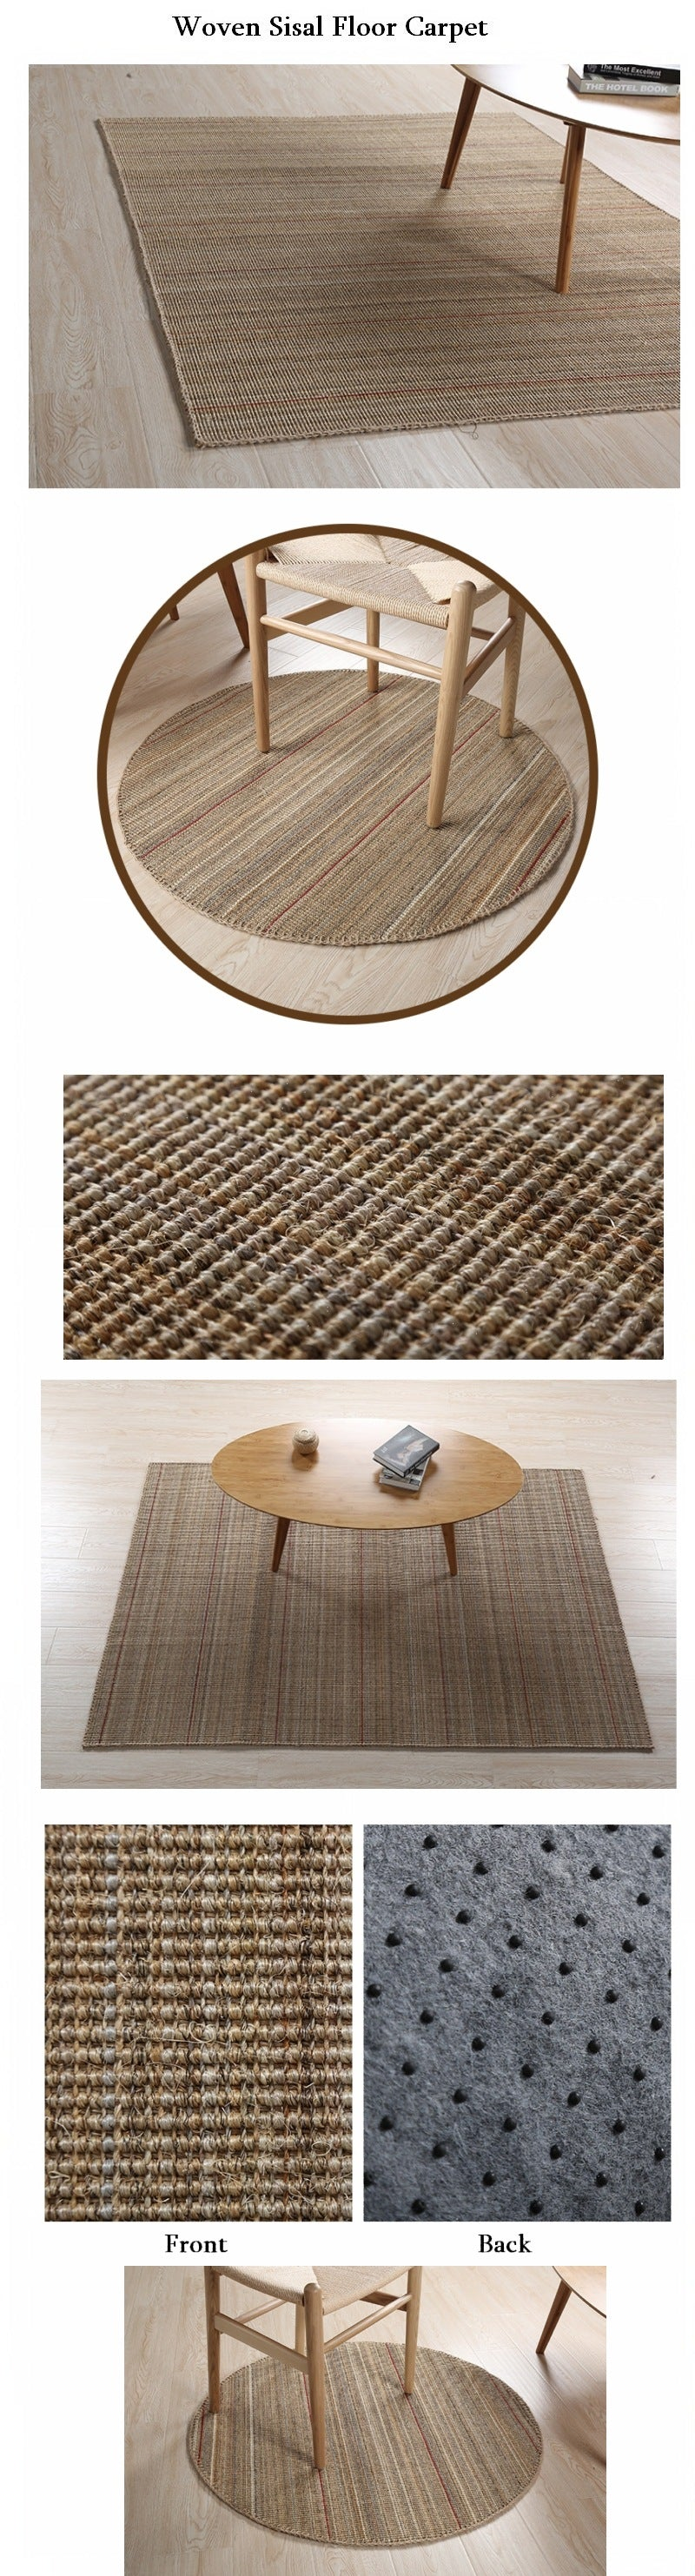 Casual Natural Fiber Natural Floor Carpet and Rugs, Rustic Woven Floor Carpet